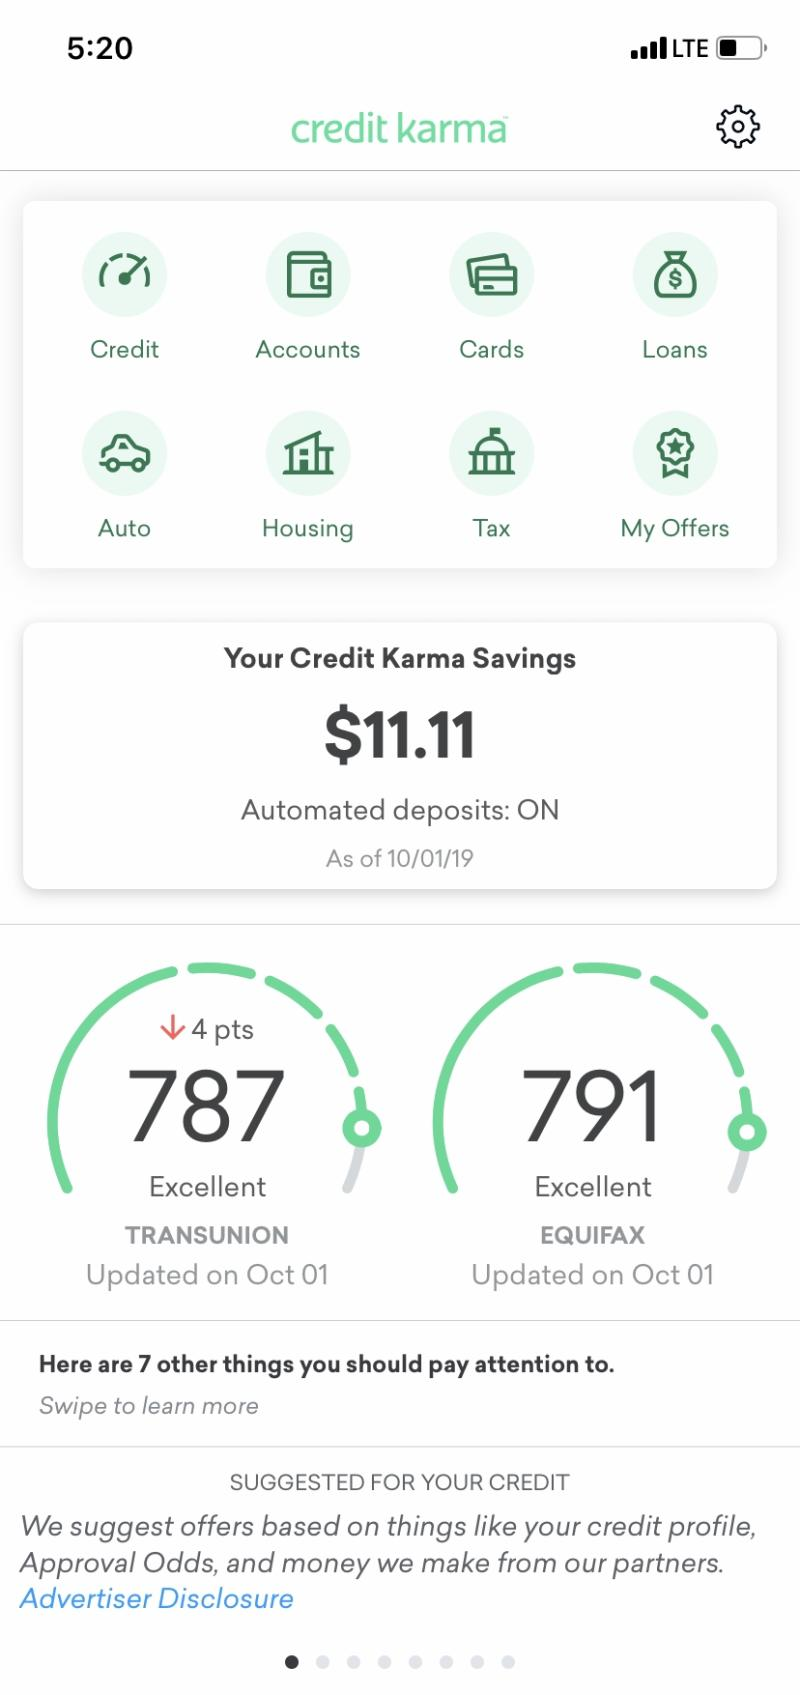 How can i access my credit karma account